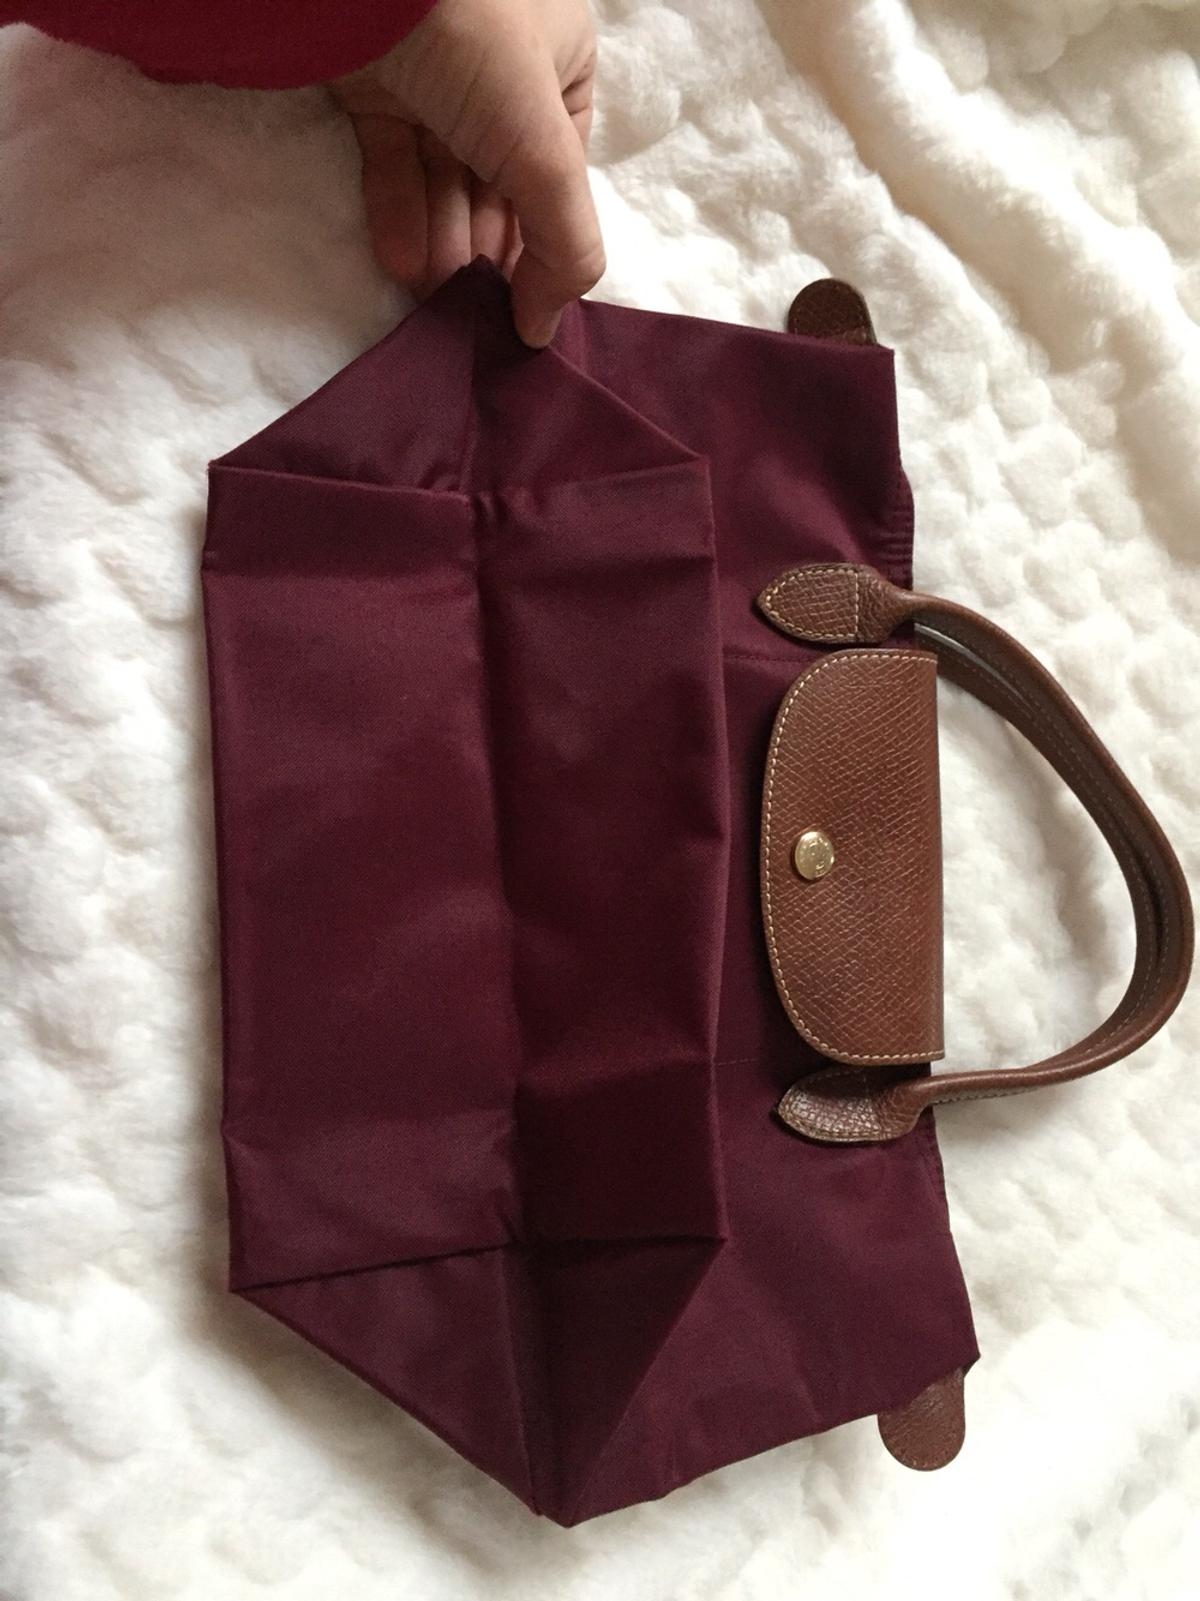 12650fb61e7b3 Wedel 00 For 22880 Tasche Bordeaux €40 Longchamp Le Pliage S Rot In EDH9W2I